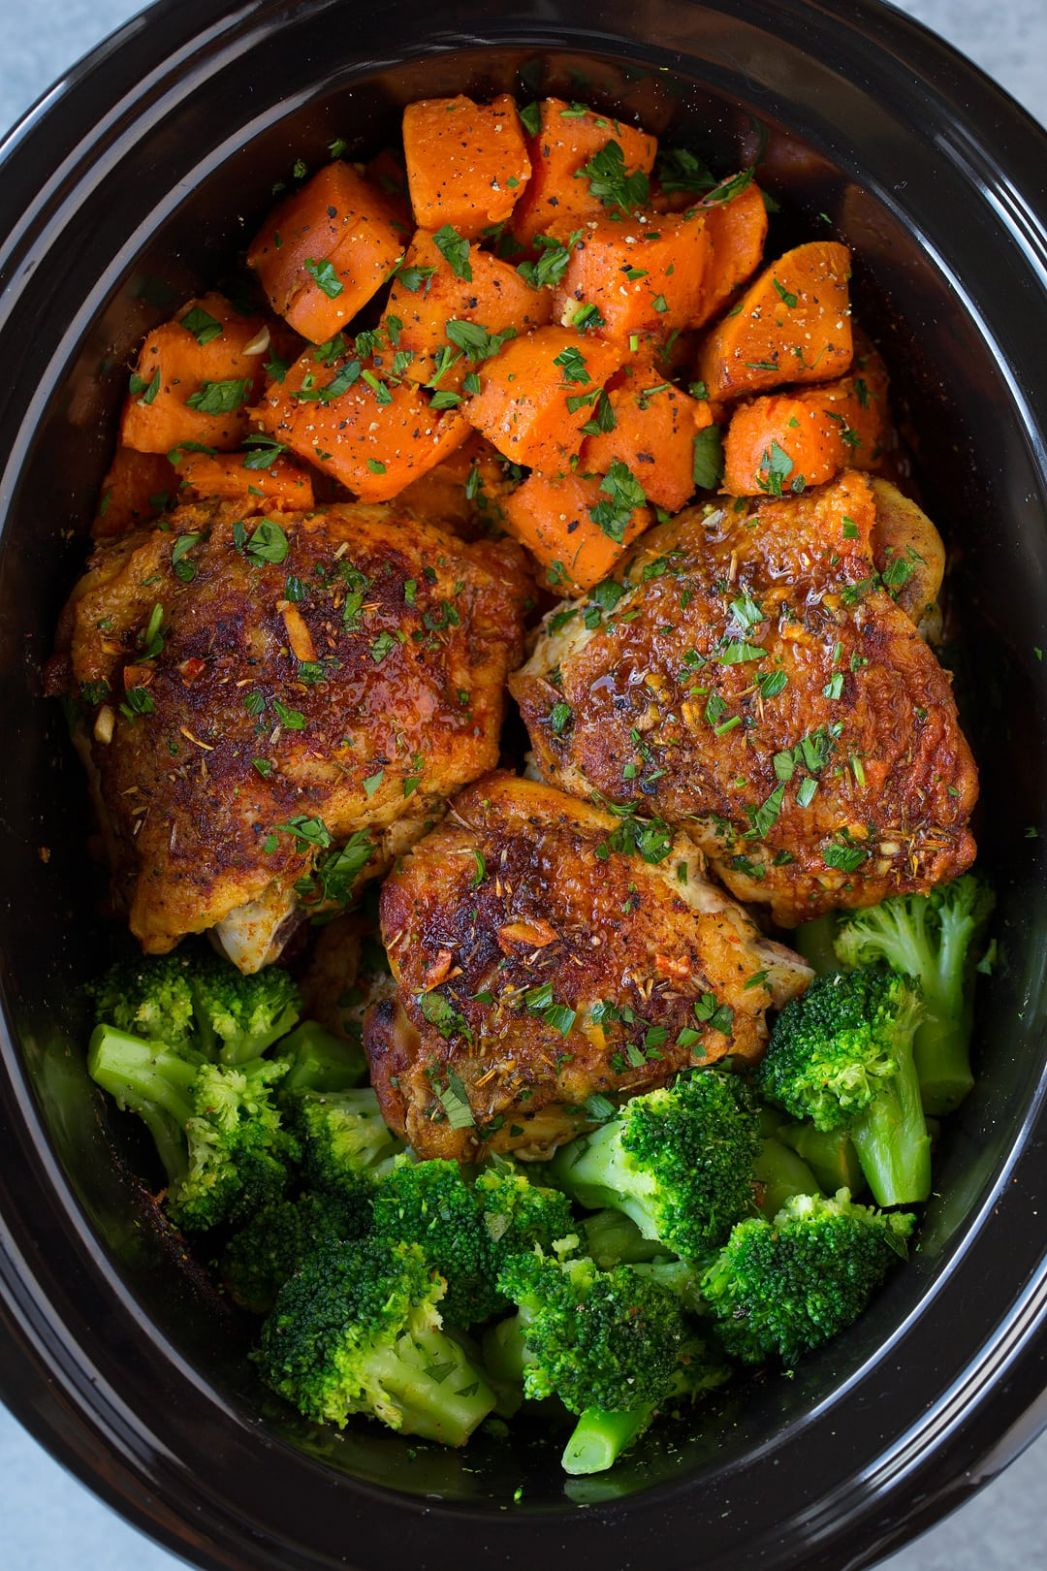 Slow Cooker Chicken with Sweet Potatoes and Broccoli - Recipes Chicken Drumsticks Slow Cooker